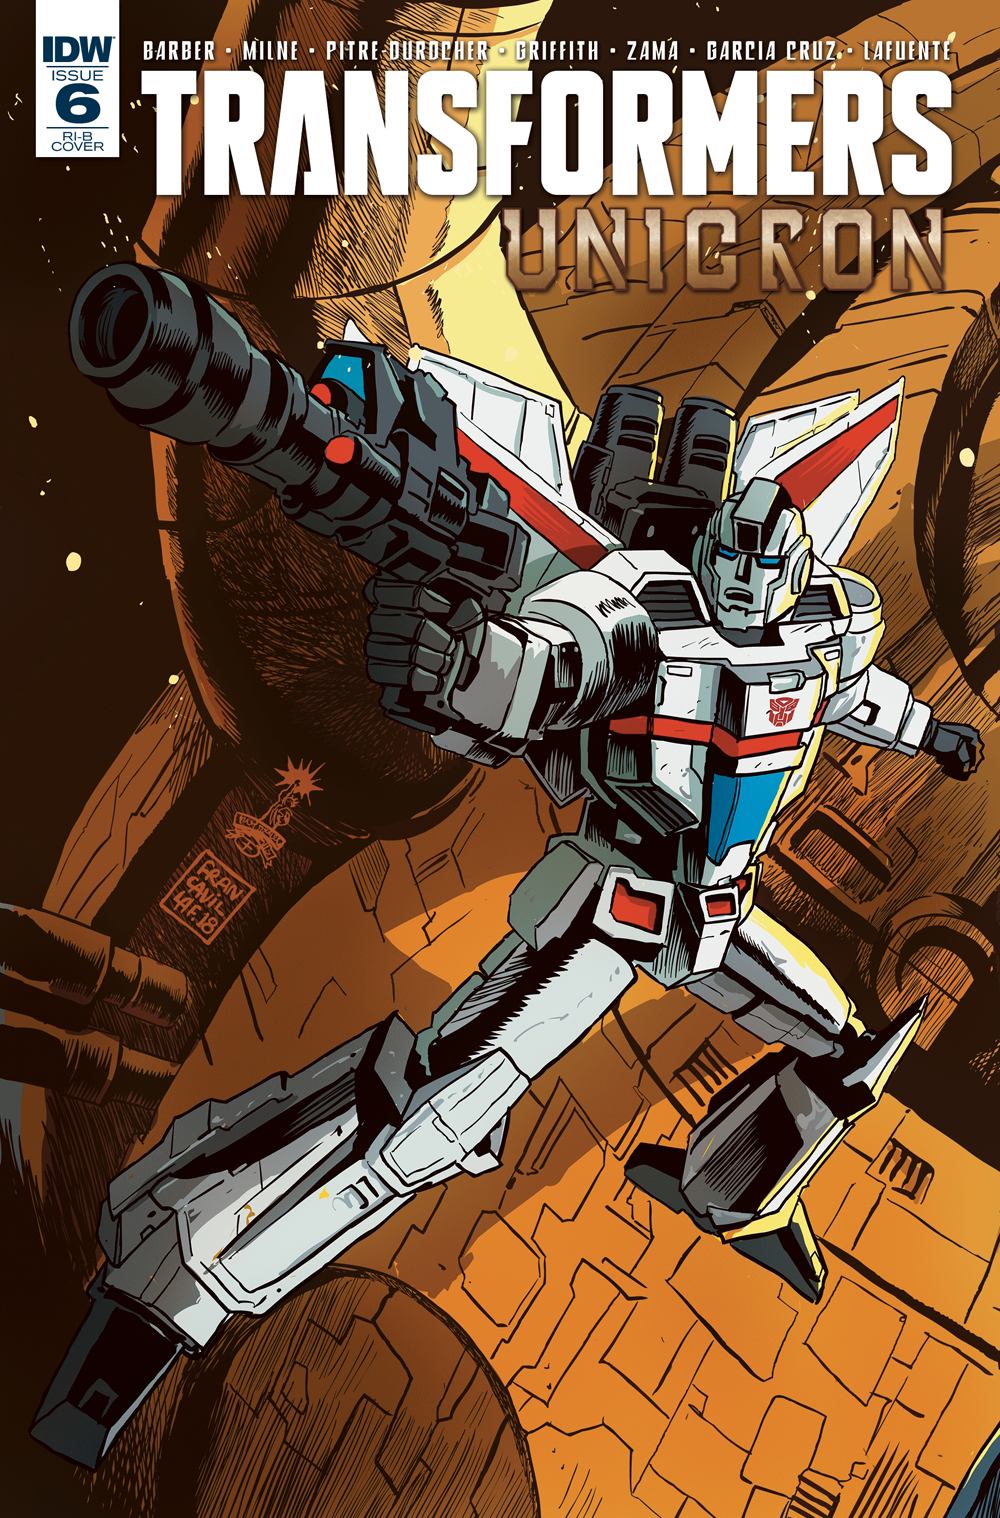 TRANSFORMERS UNICRON #6 (OF 6) 20 COPY INCV FRANCAVILLA (NET